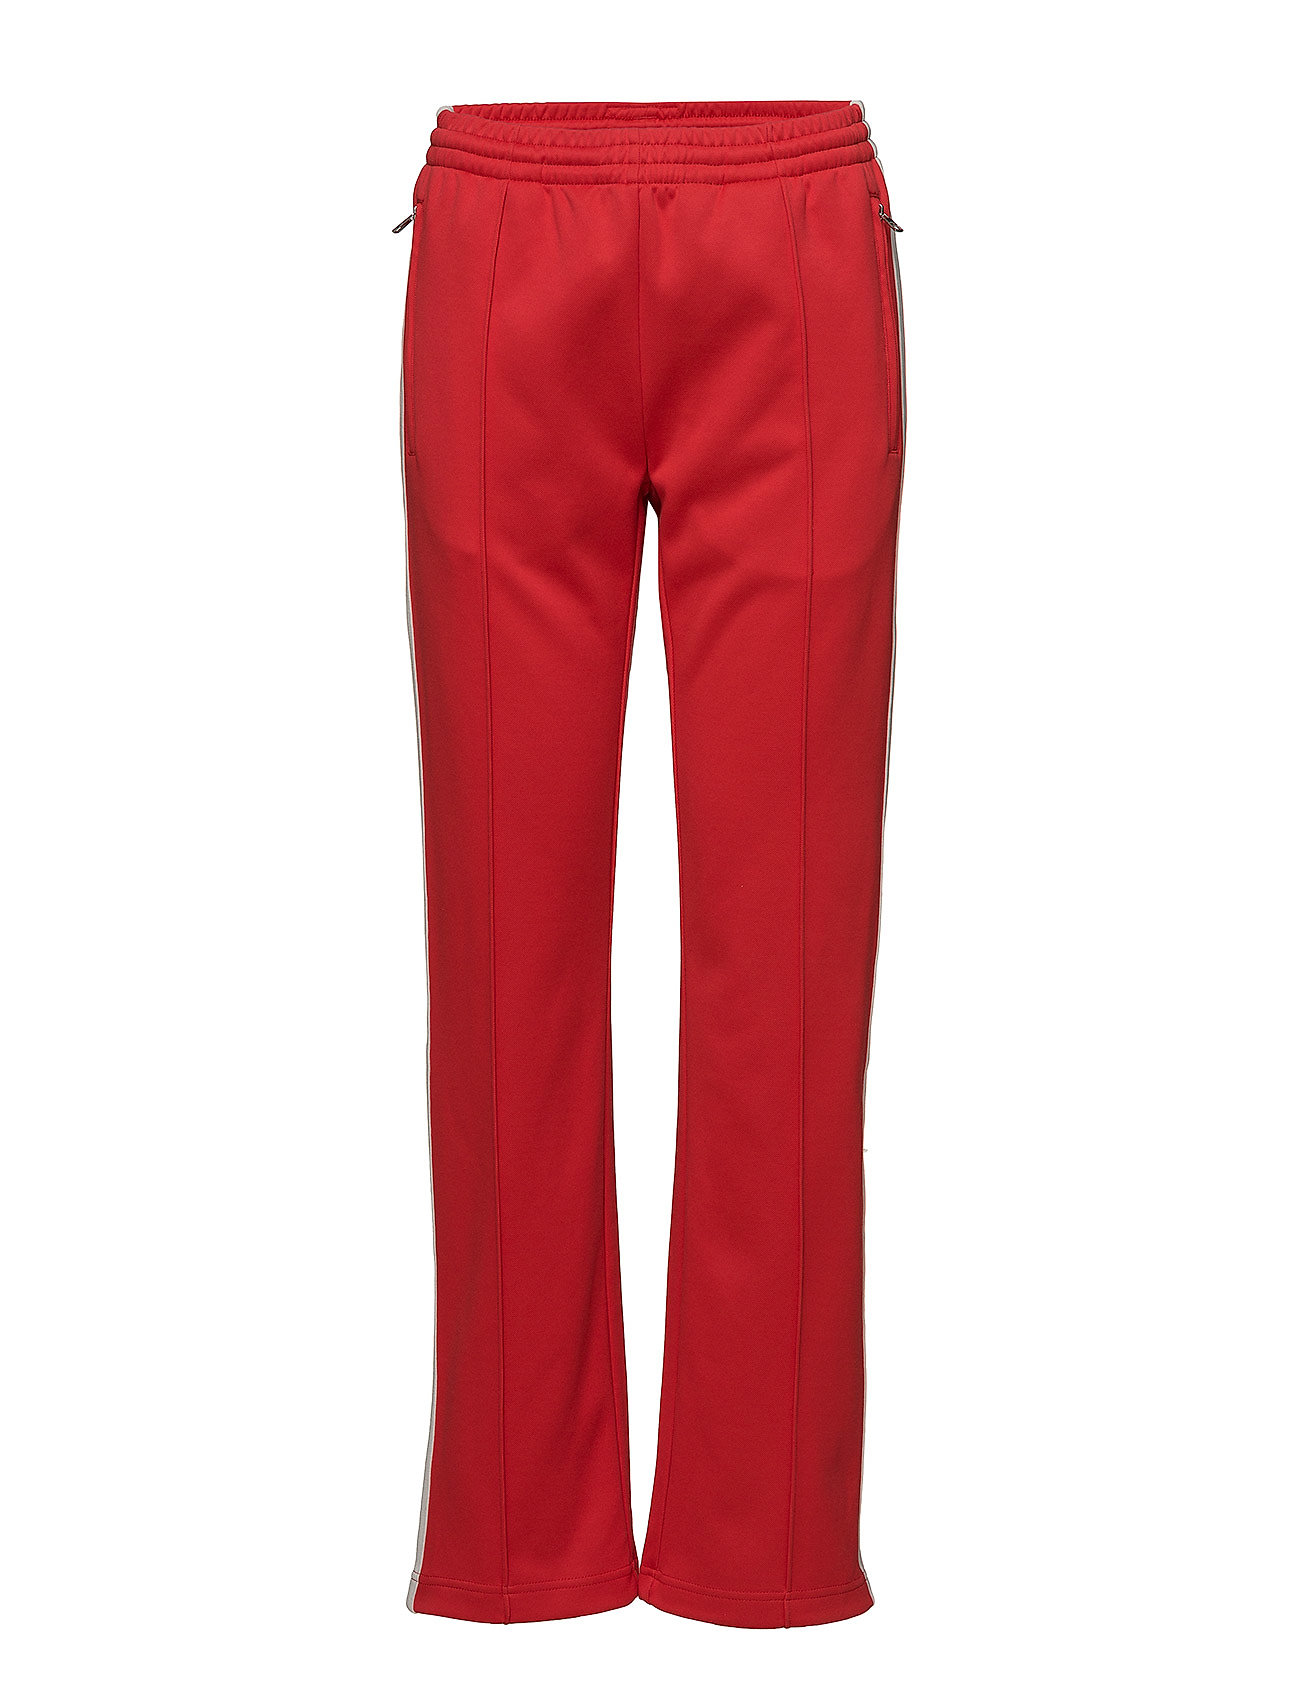 Calvin Klein Jeans TAPED KNIT STRAIGHT FIT TRACK PANT - TOMATO